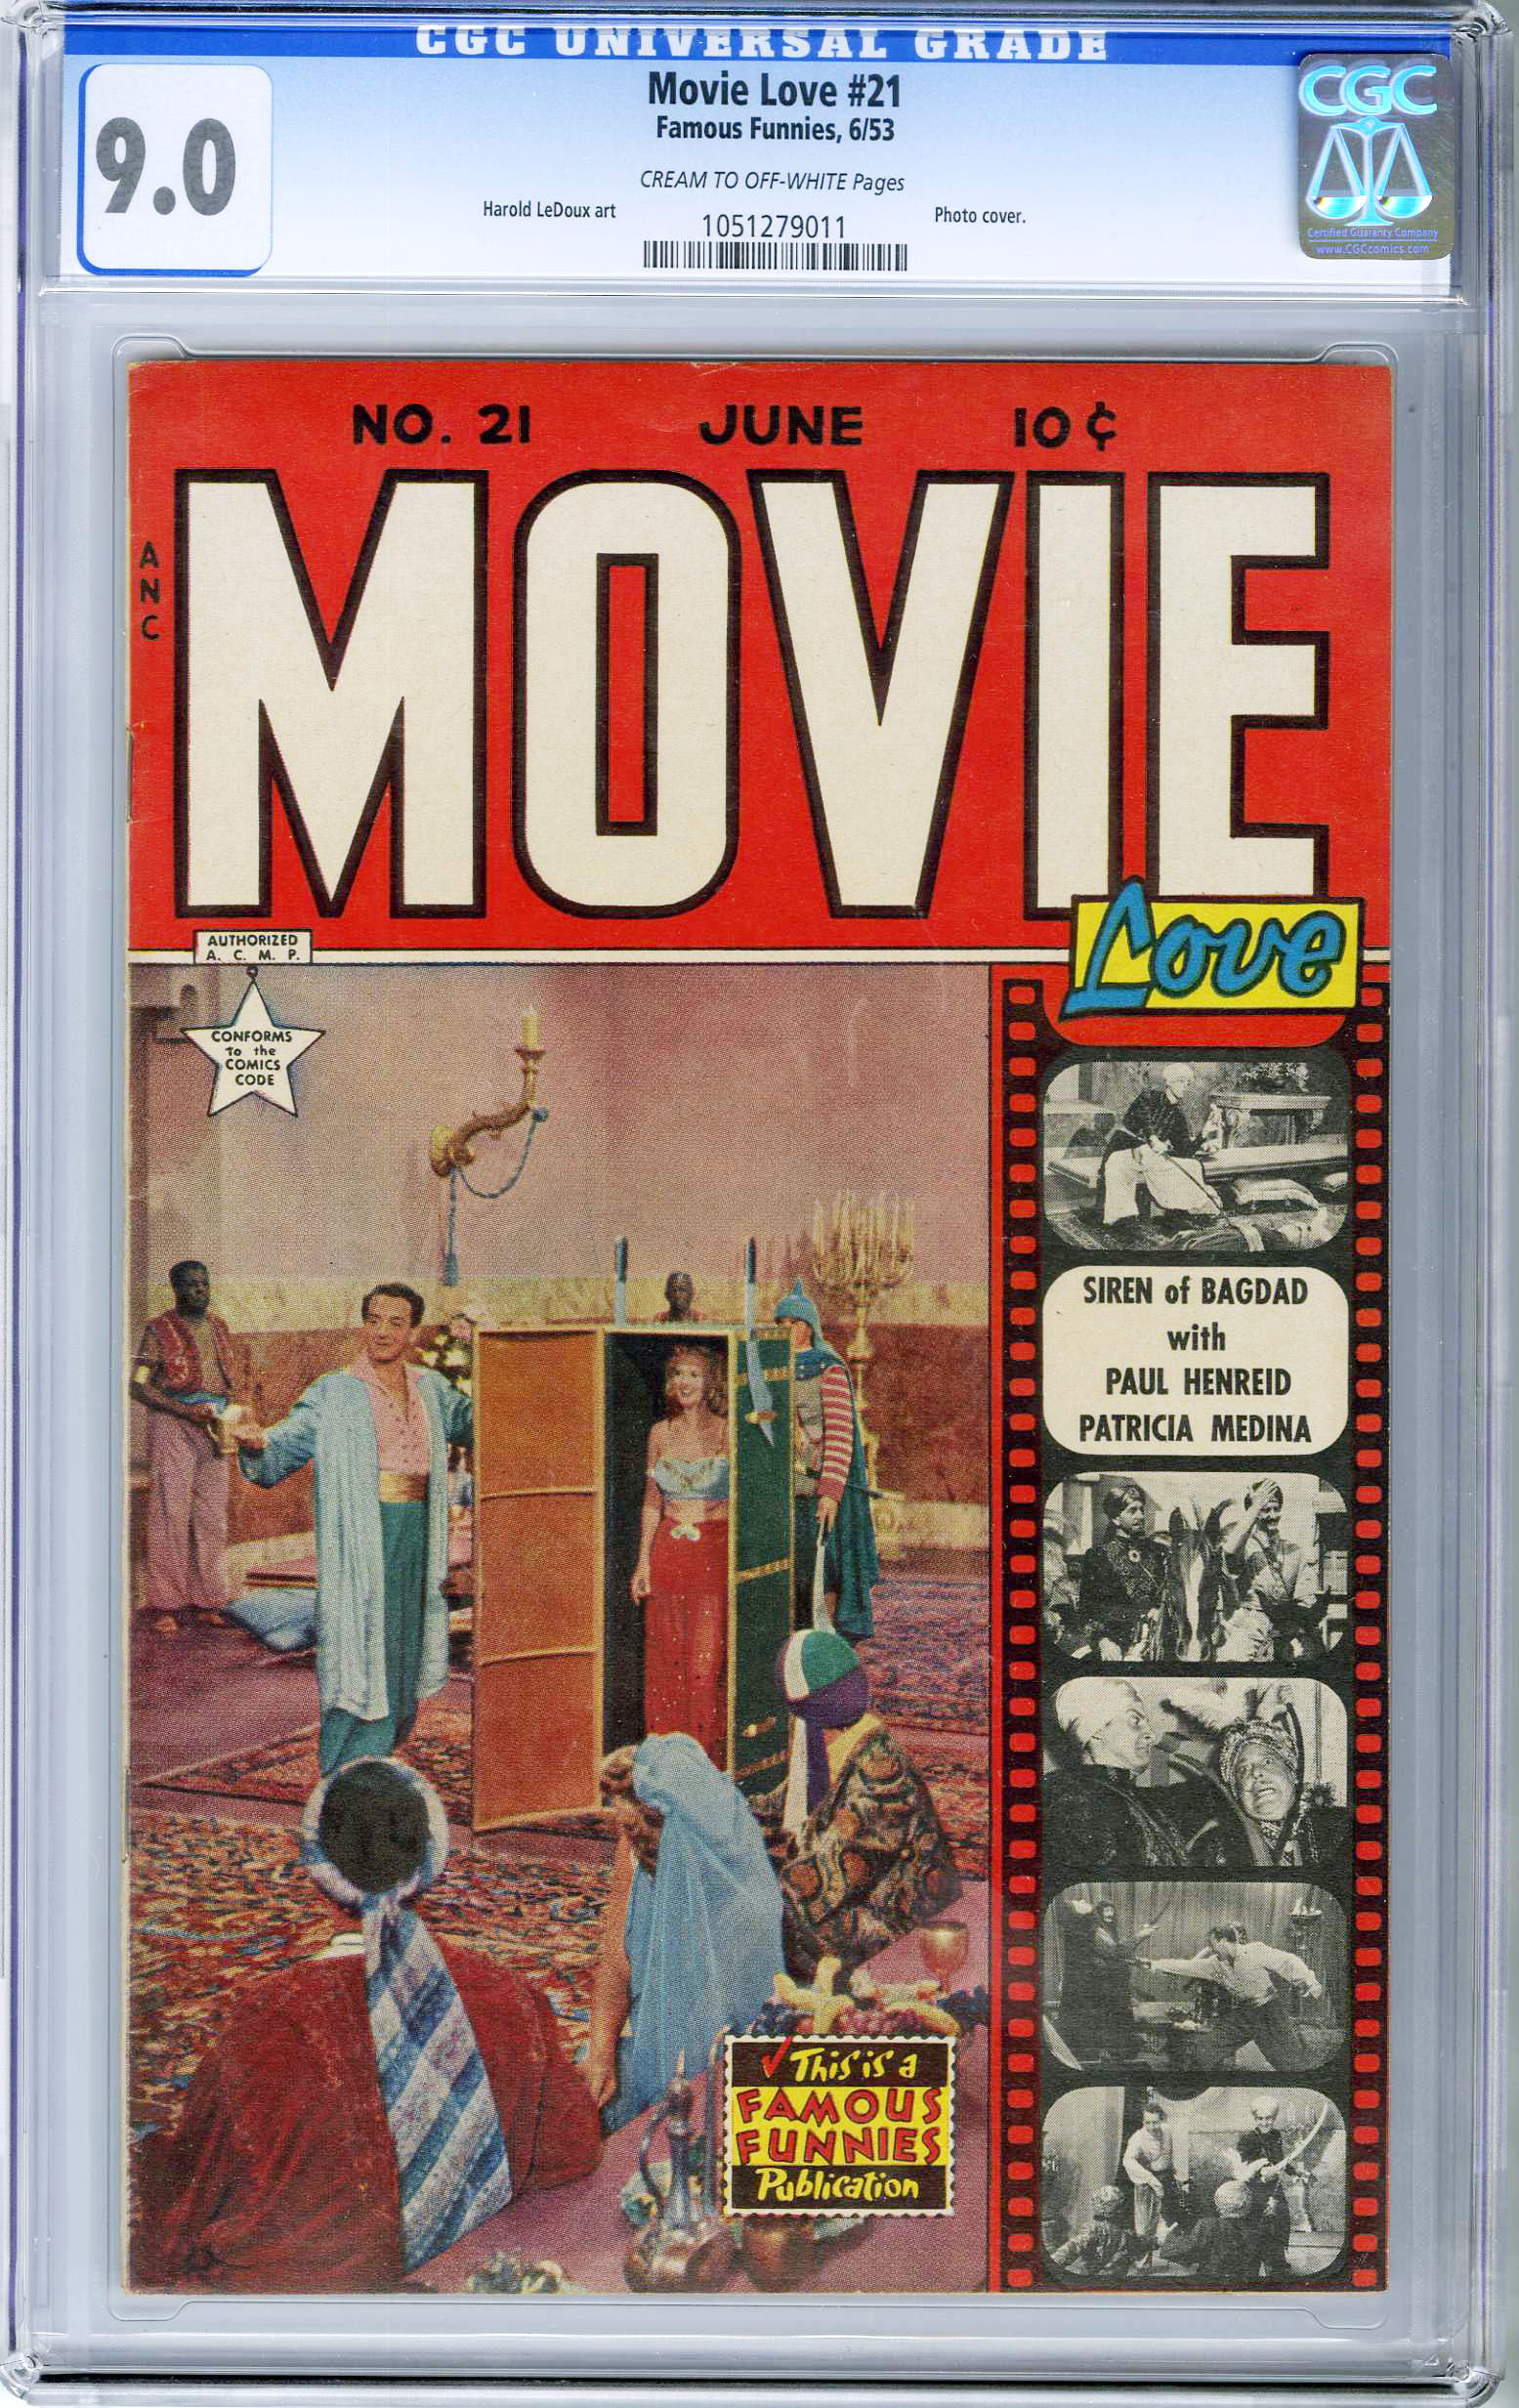 MOVIE LOVE #21 (1953) CGC VF/NM 9.0 COW Pages PHOTO COVER